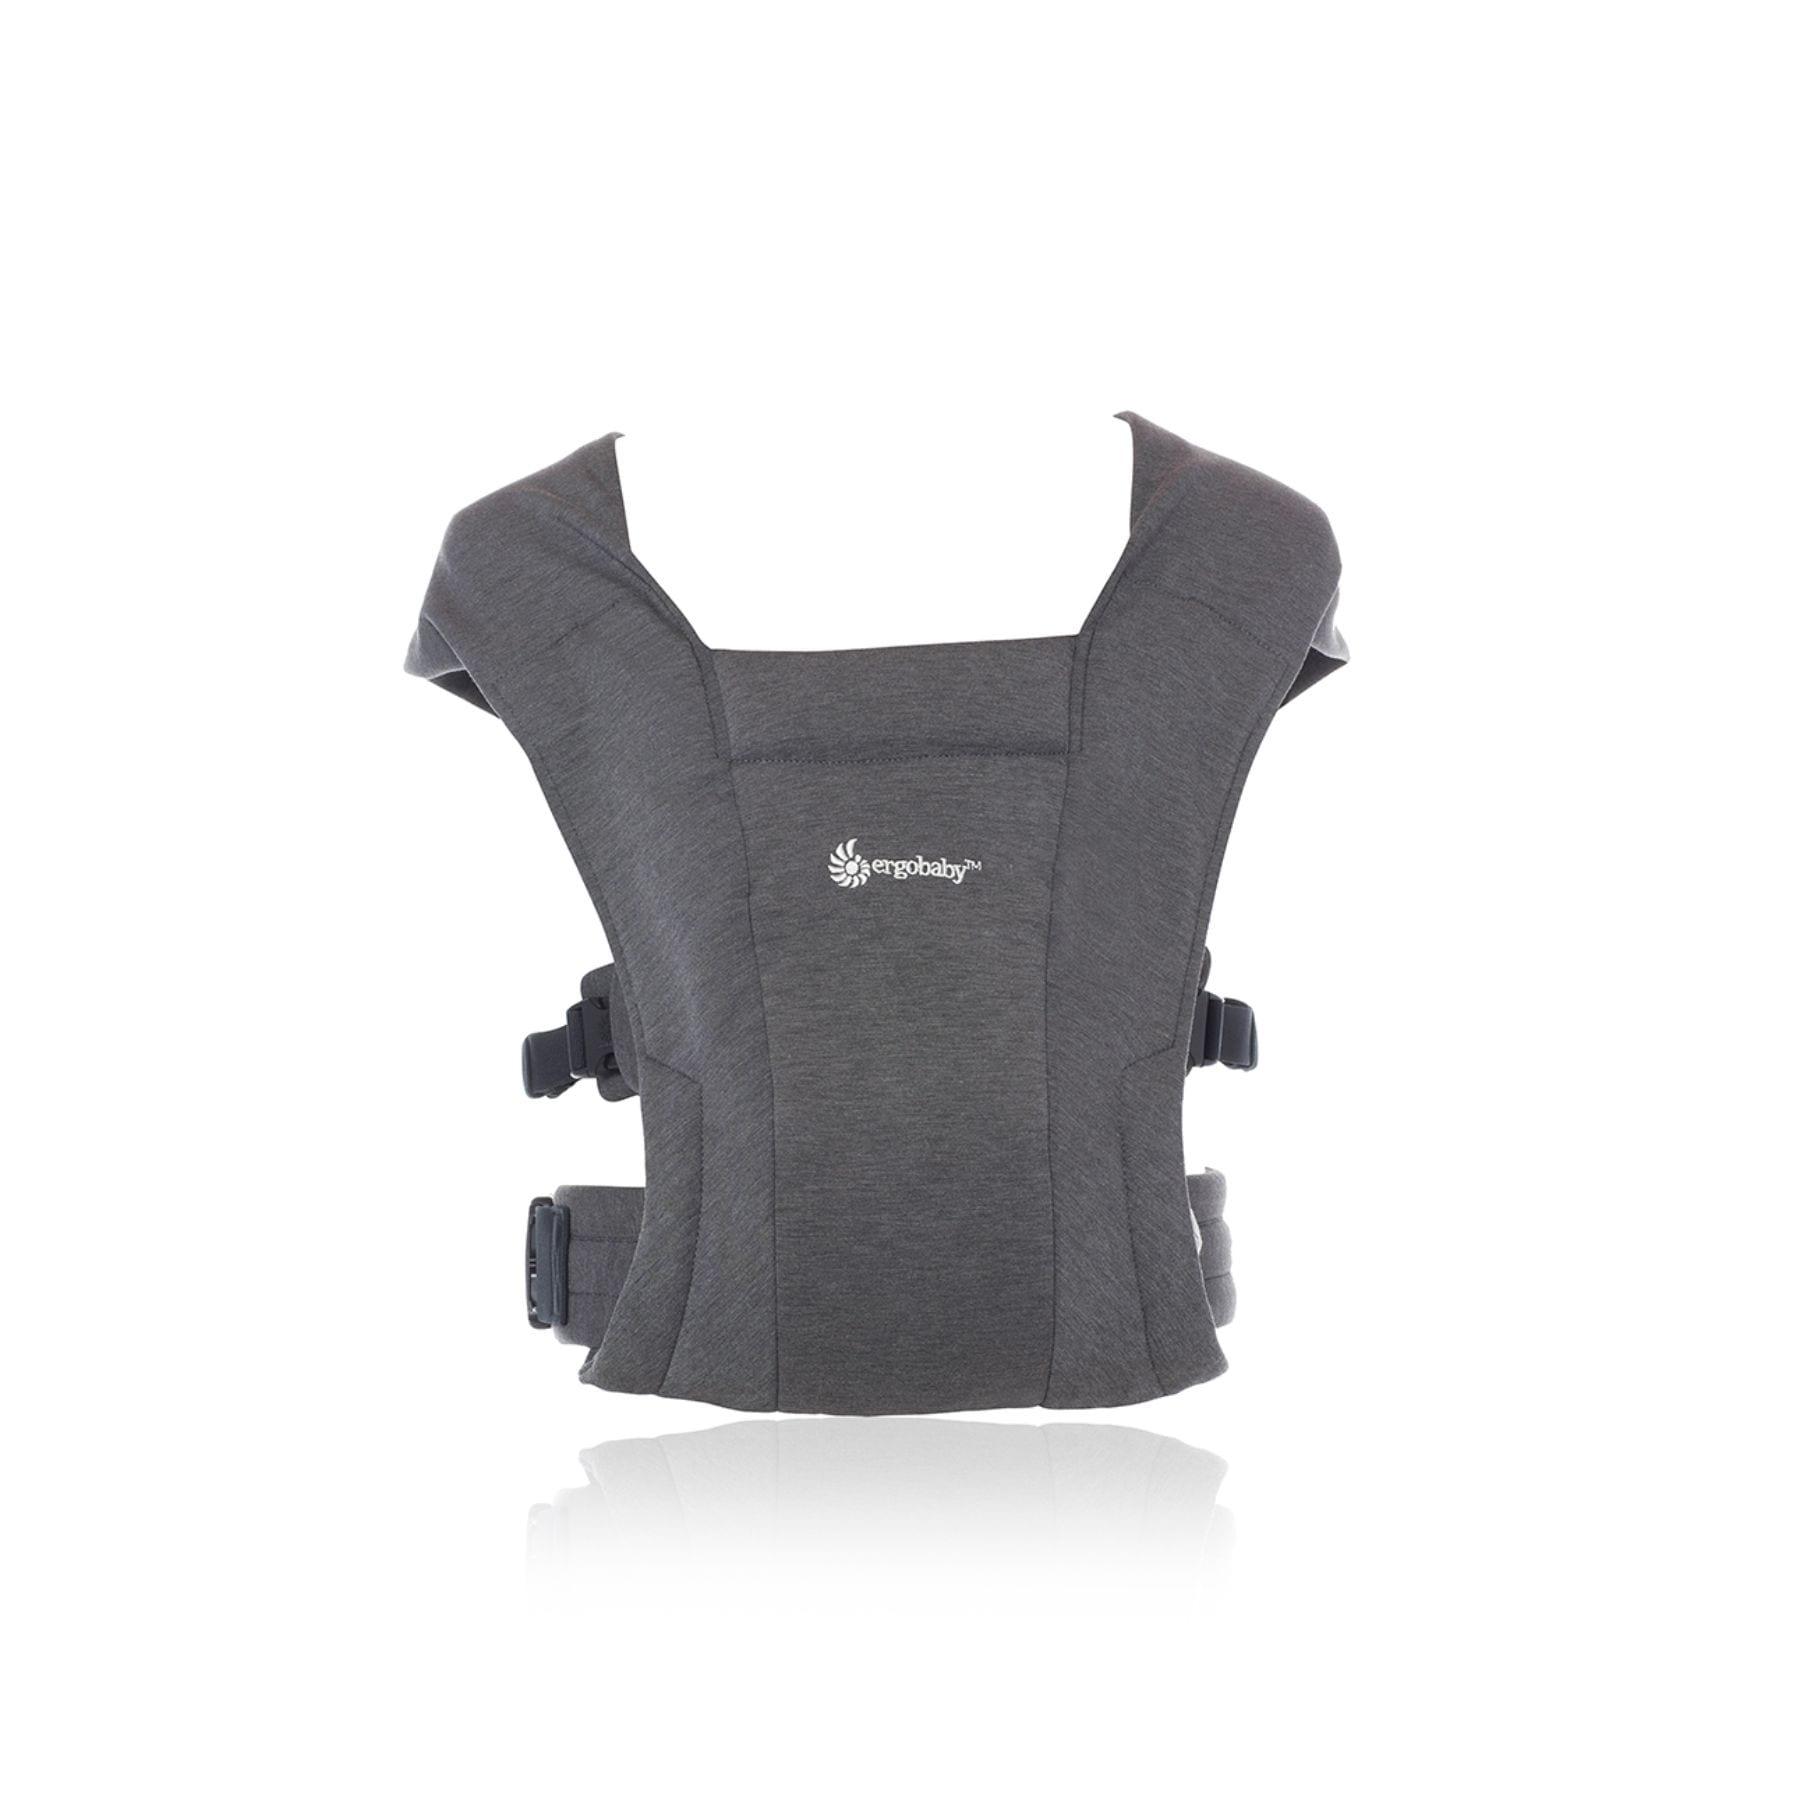 Ergo baby Embrace Carrier - Heather Grey